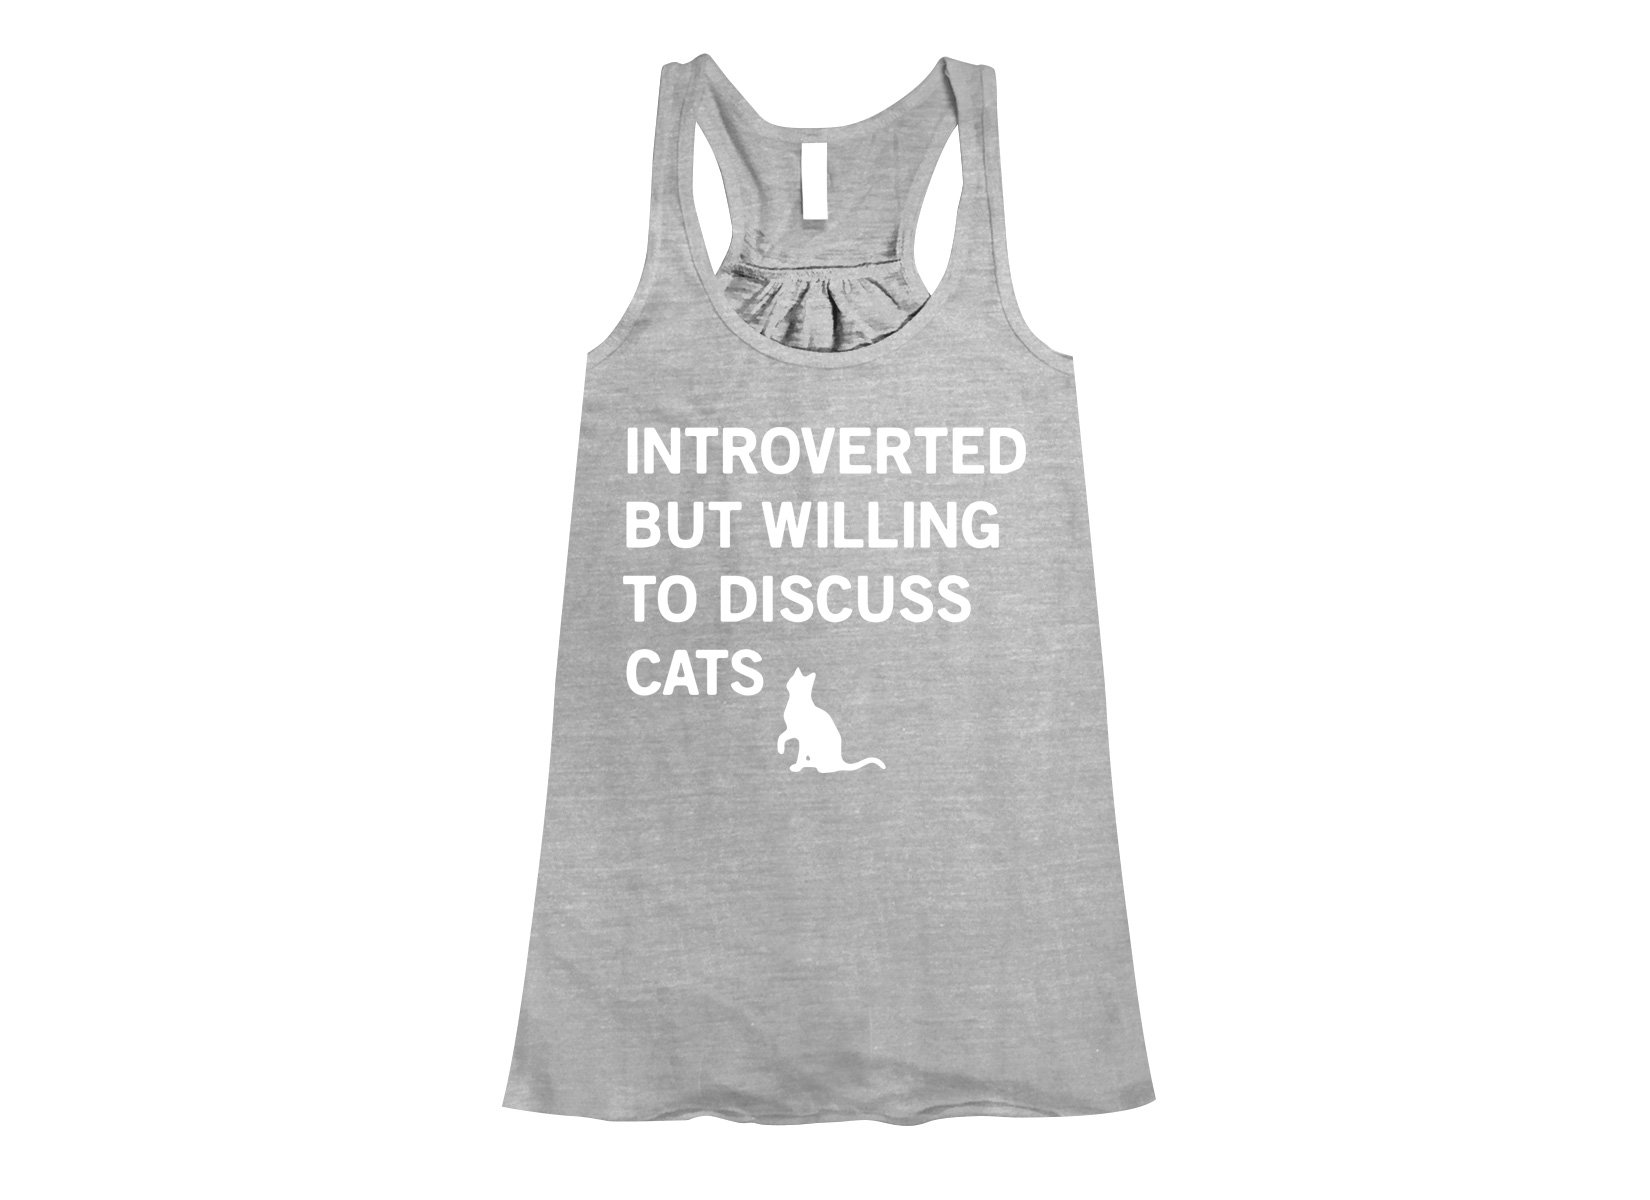 Introverted But Willing To Discuss Cats on Womens Tanks T-Shirt